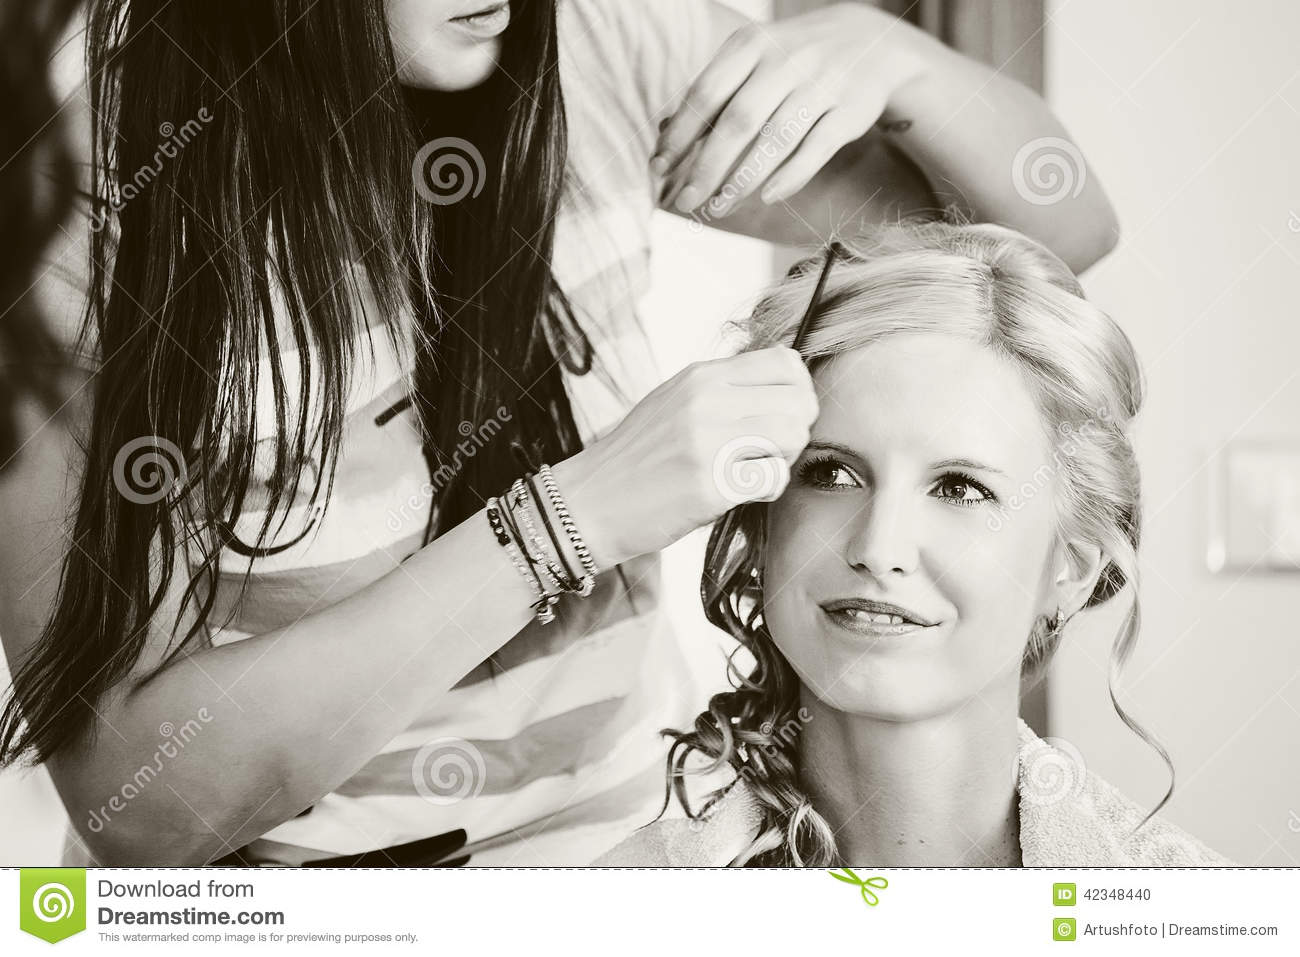 Hair Stylist Designer Making Hairstyle For Woman Stock Photo - Image ...